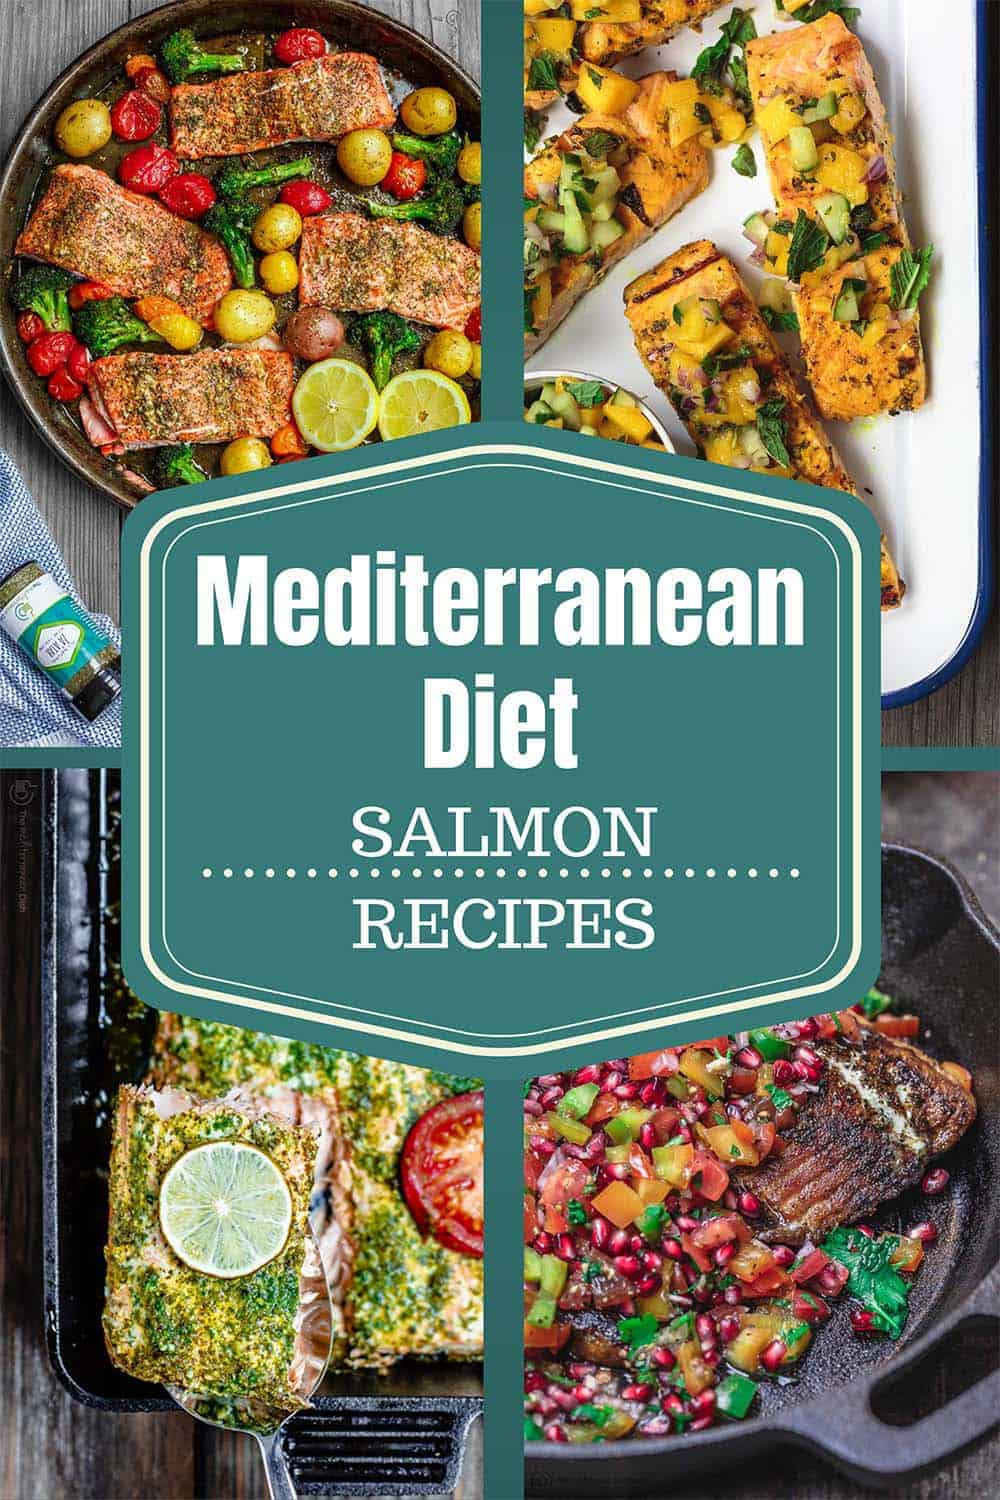 Mediterranean Diet Salmon Recipes